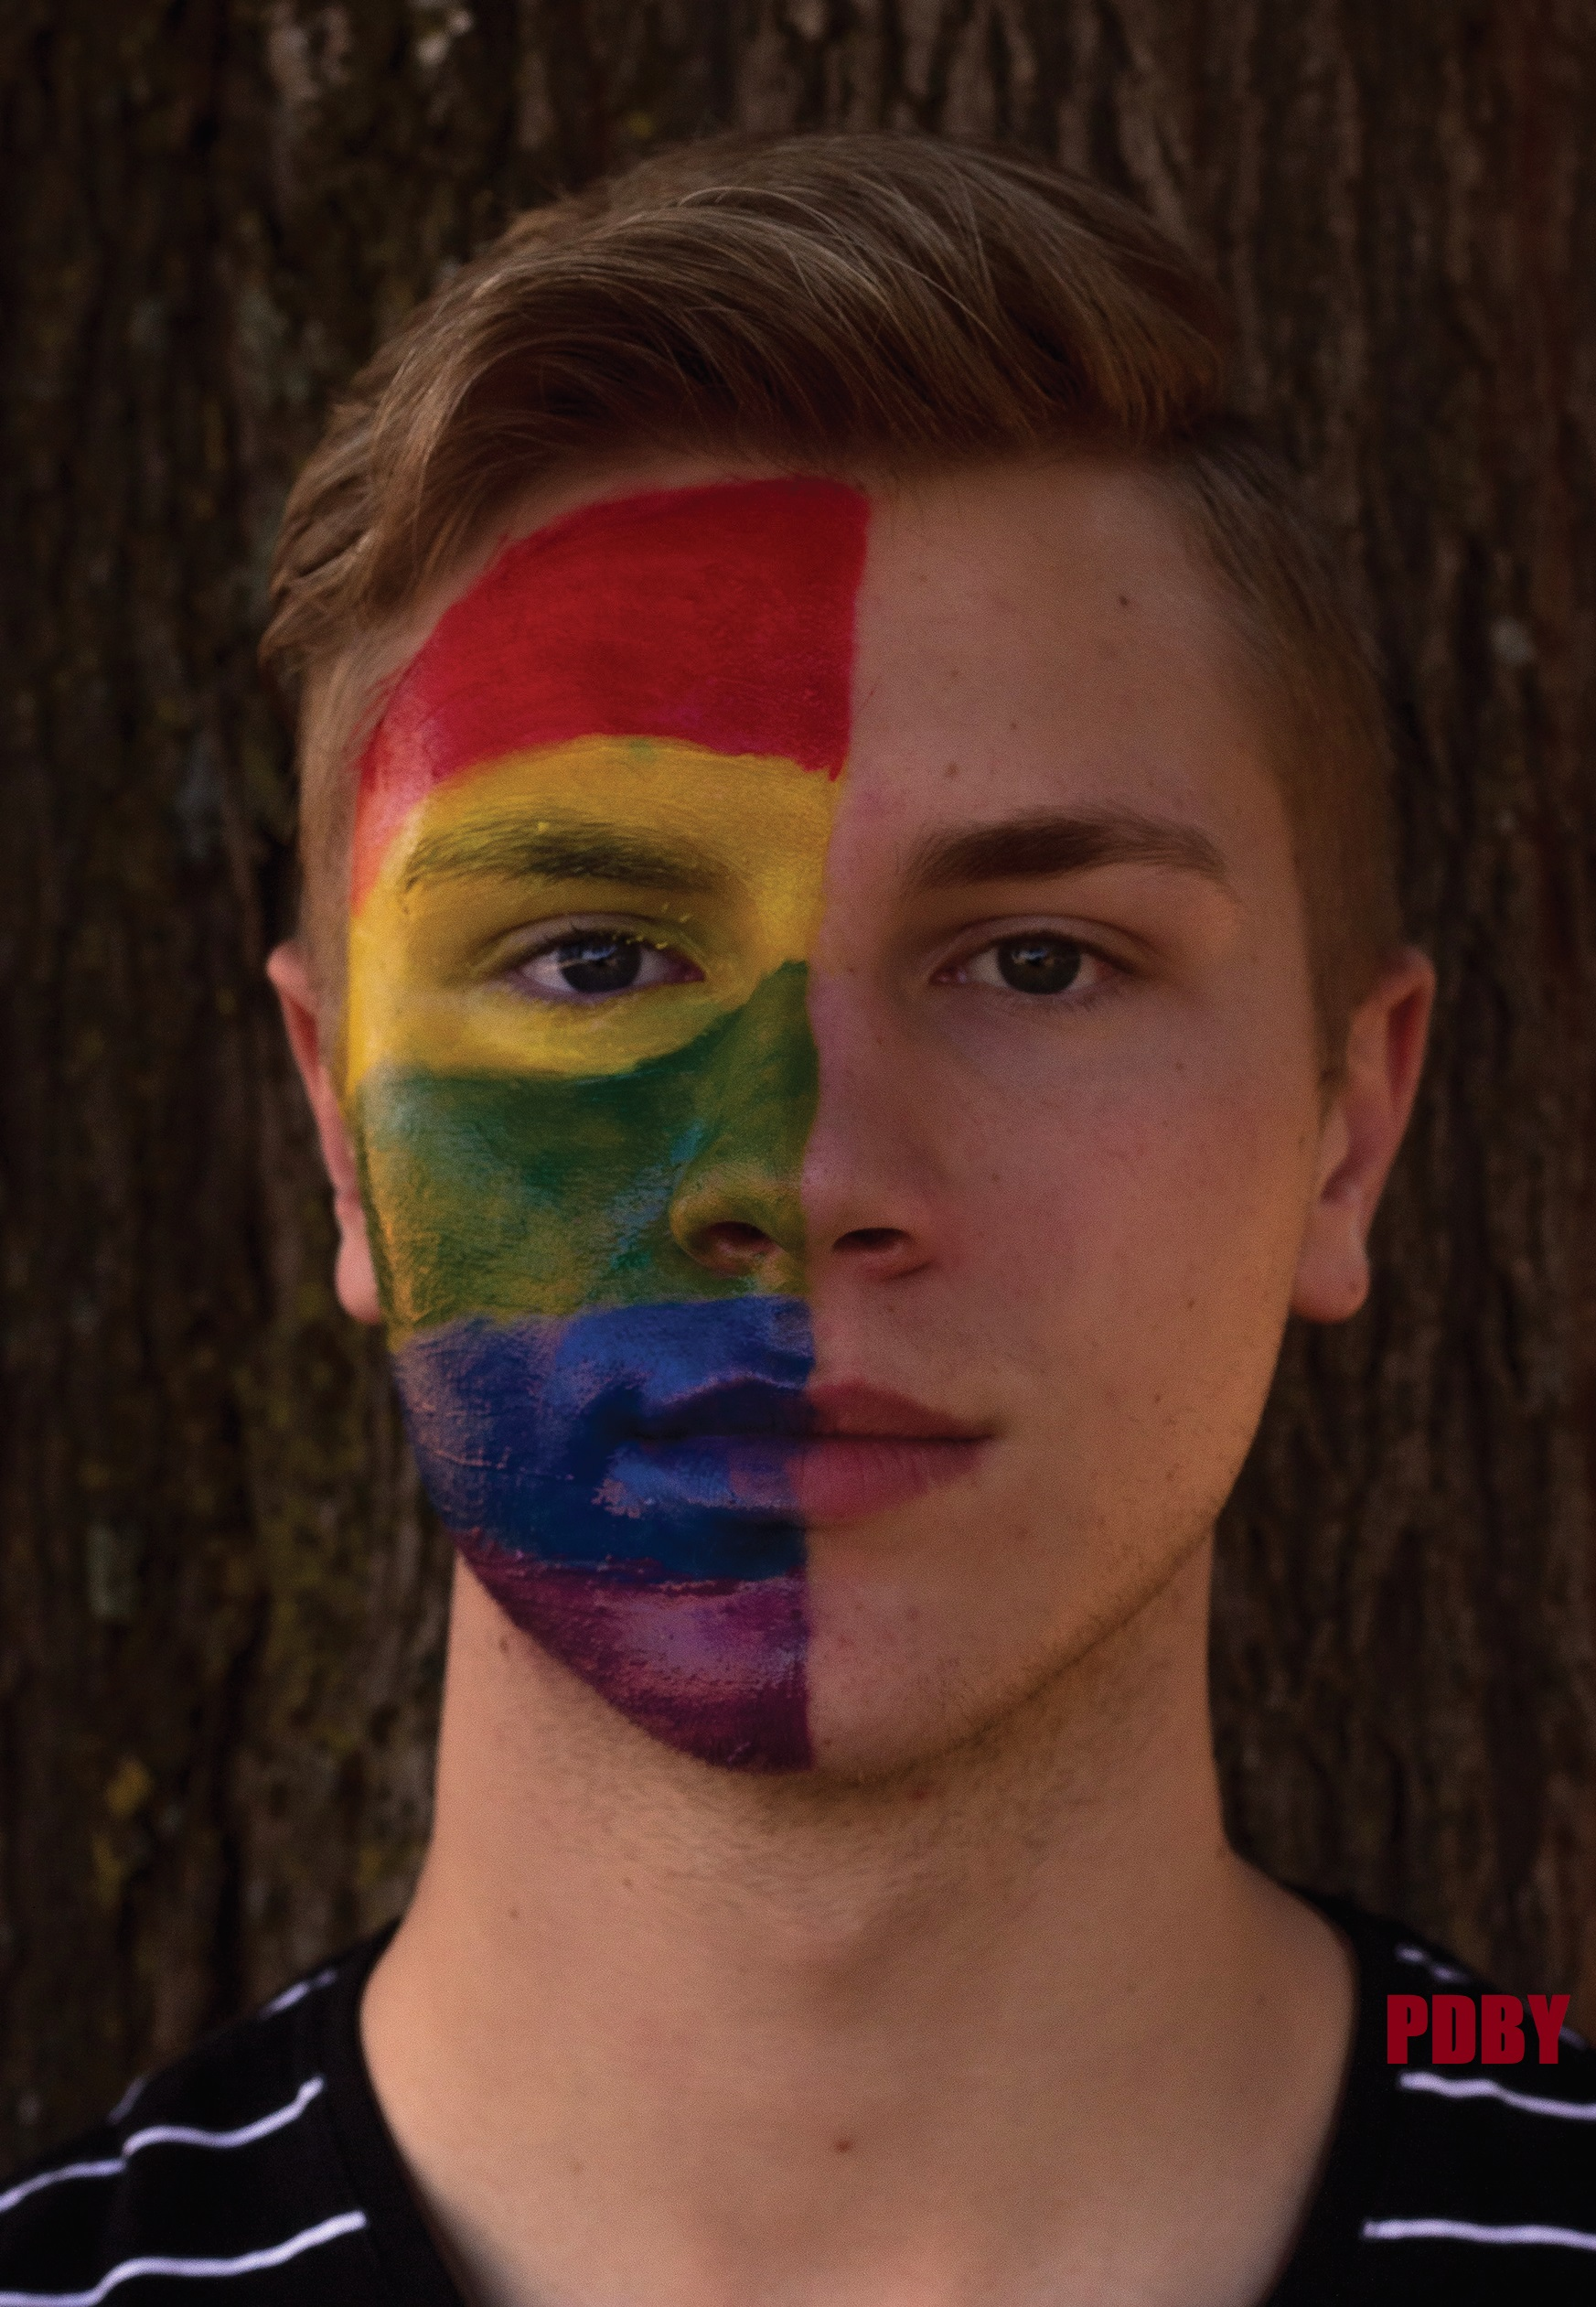 THE TRIALS AND TRIBULATIONS OF COMING OUT